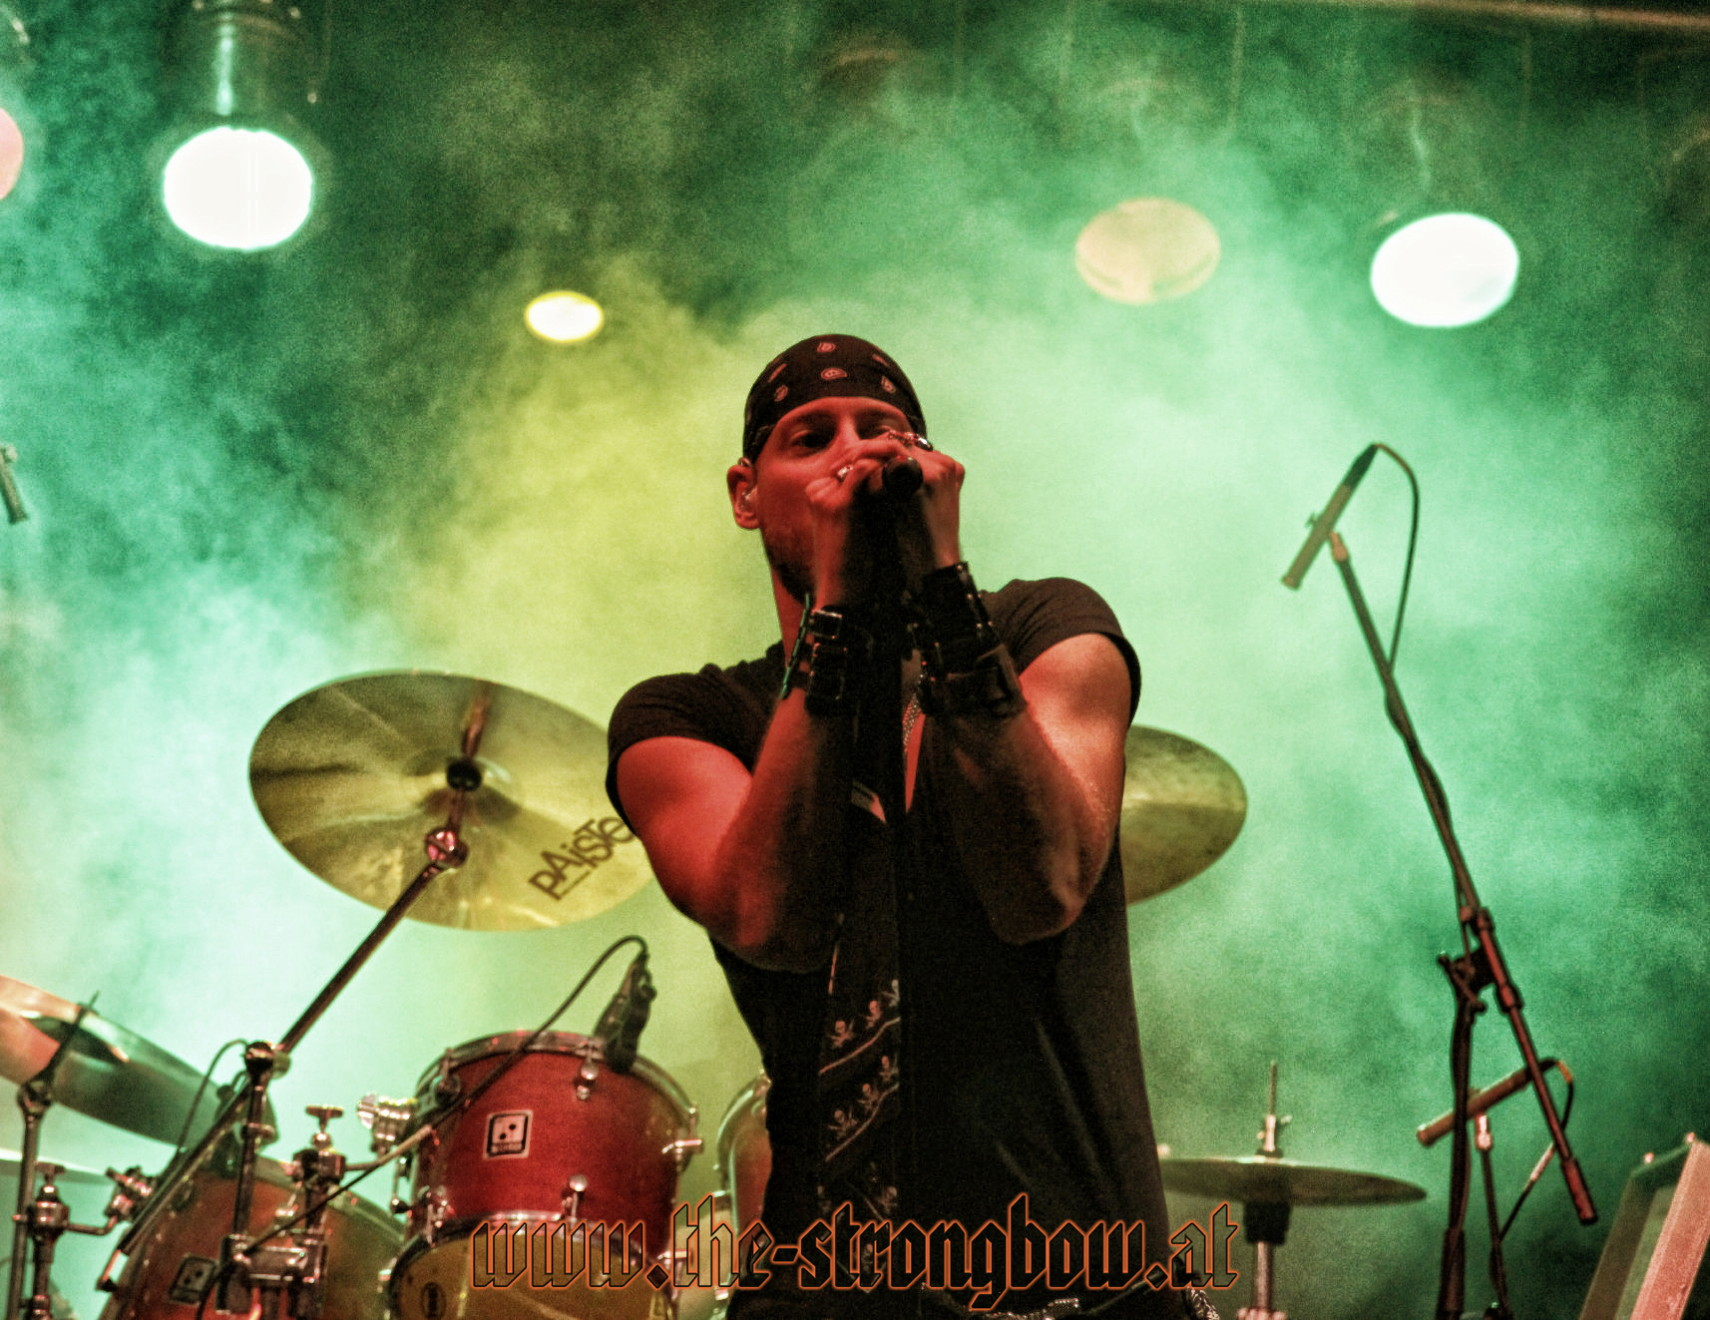 The Coverband Strongbow - Leo Moertl